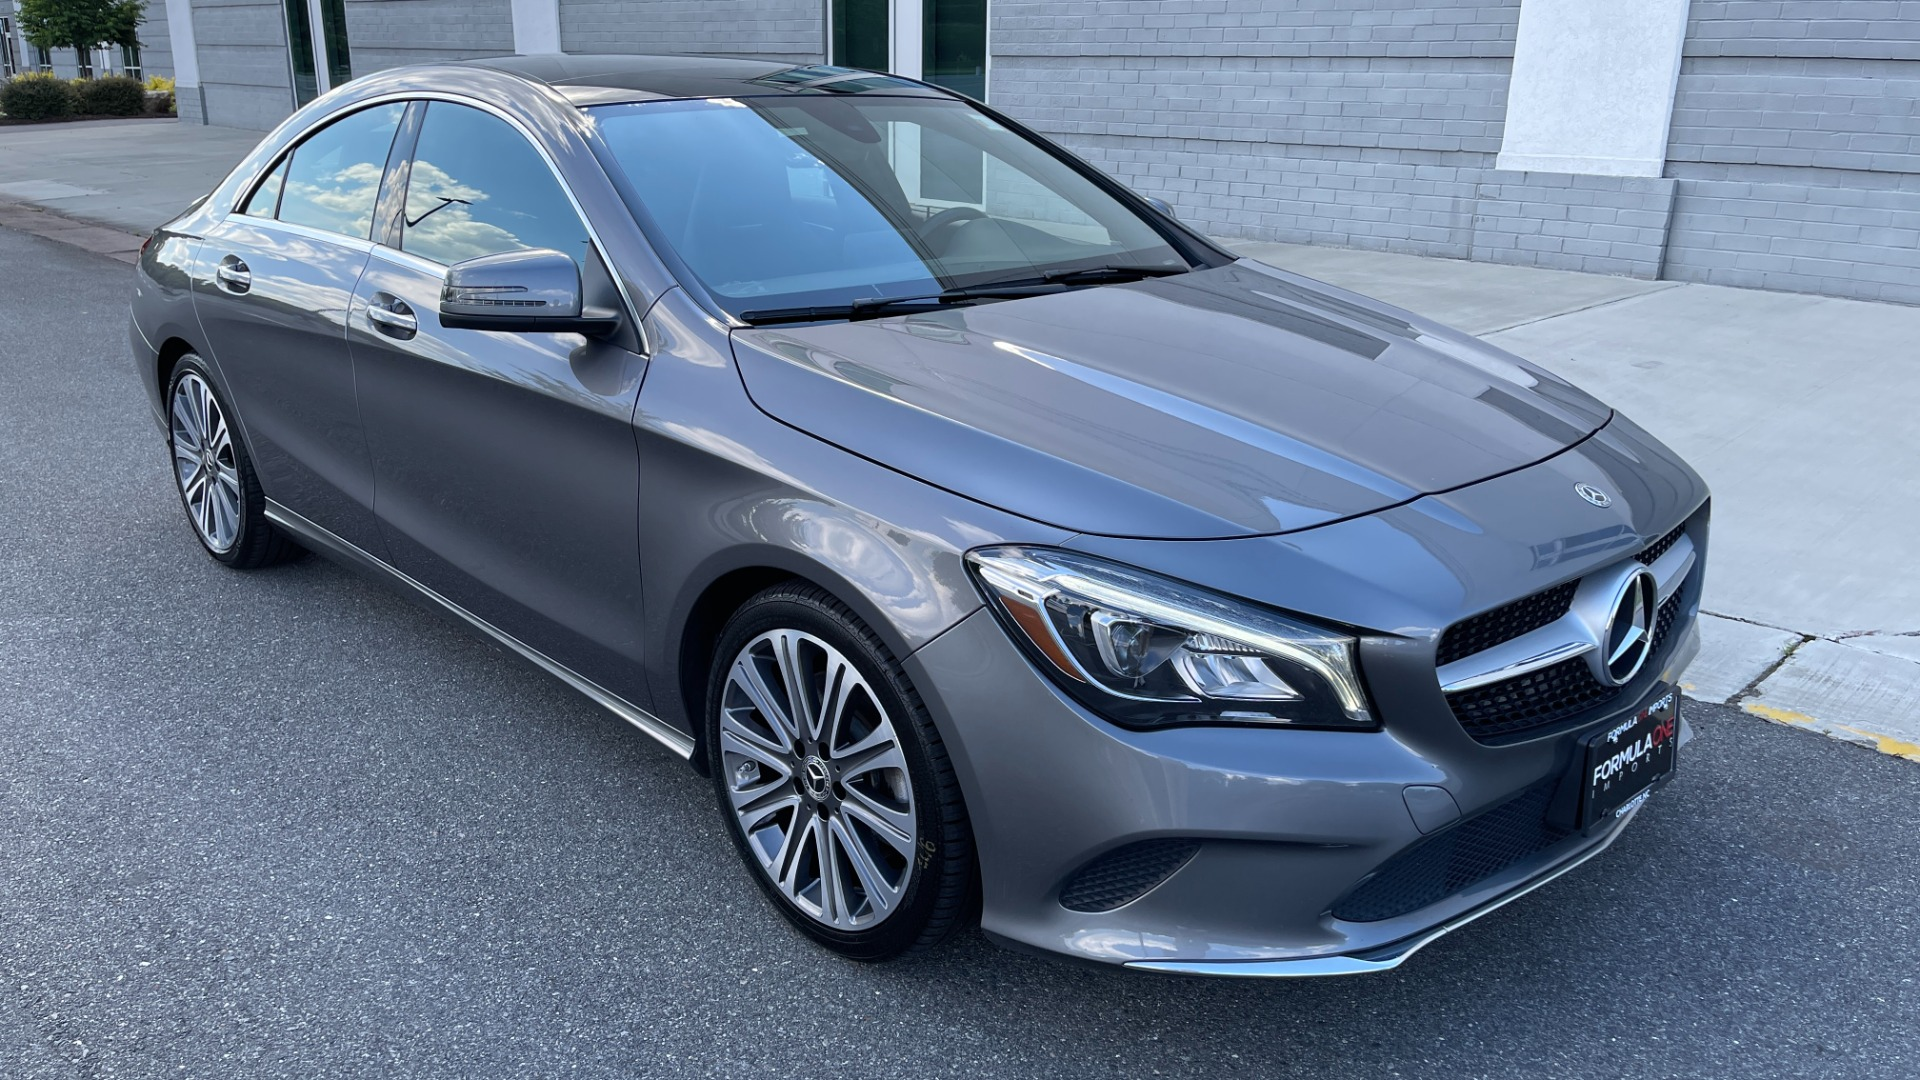 Used 2019 Mercedes-Benz CLA 250 4MATIC PREM & CONV PKG / APPLE / PANO-ROOF / H/K SND / REARVIEW for sale $29,795 at Formula Imports in Charlotte NC 28227 6